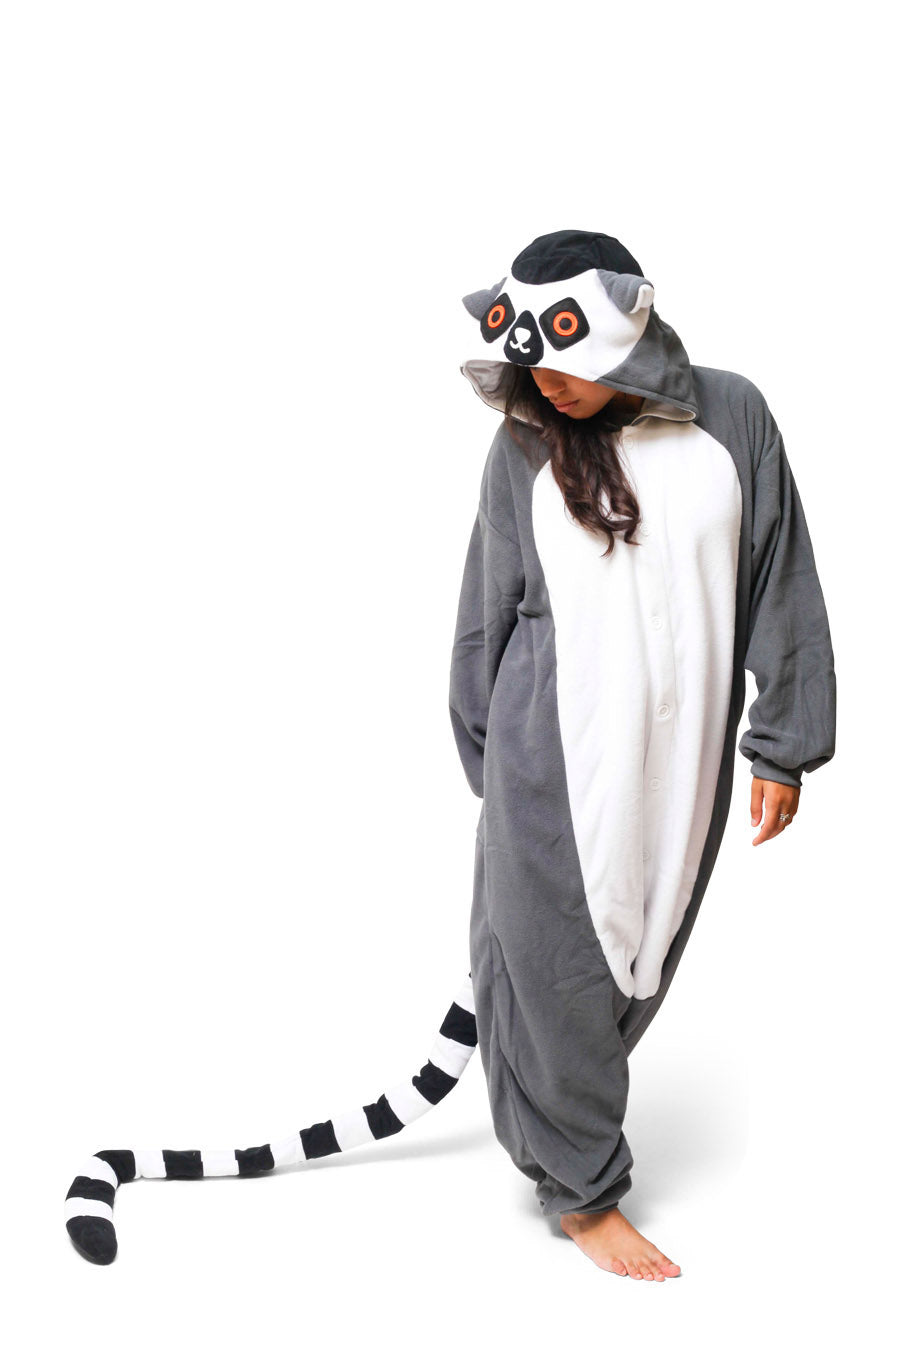 Ring-Tailed Lemur X-Tall Animal Kigurumi Adult Onesie Costume Pajamas Black Front Main Duplicate